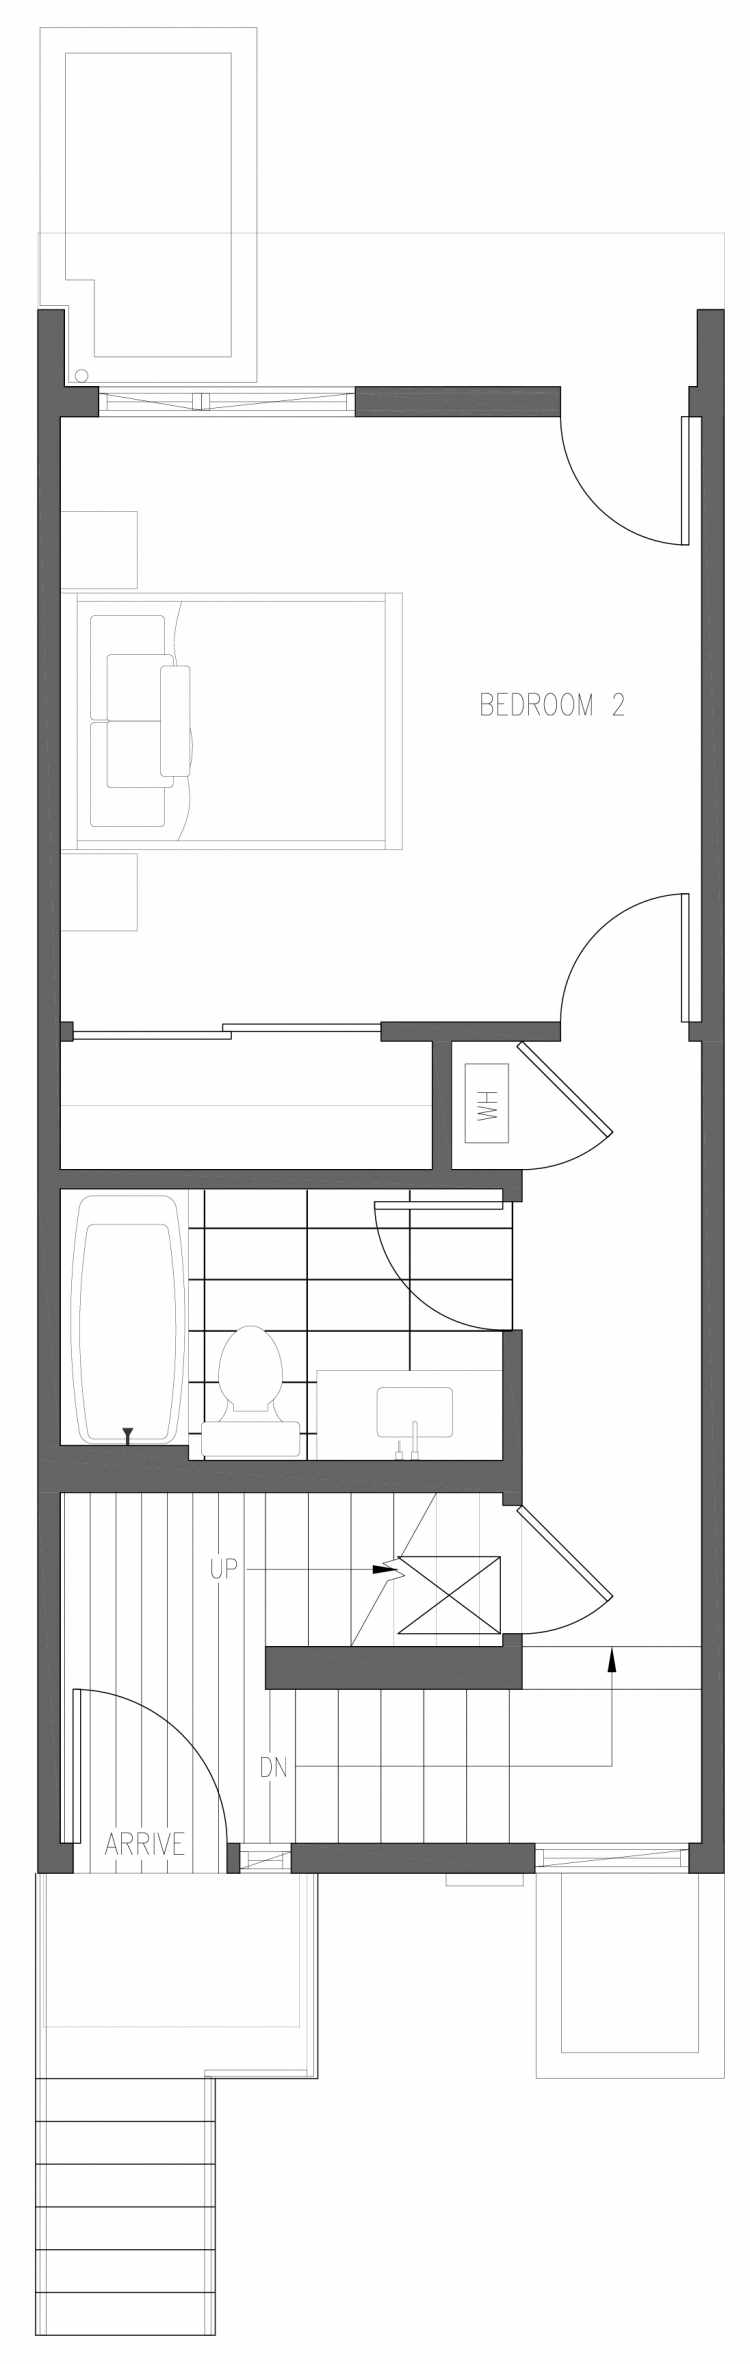 First Floor Plan of 6417 14th Ave NW, One of the Oleana Townhomes in Ballard by Isola Homes